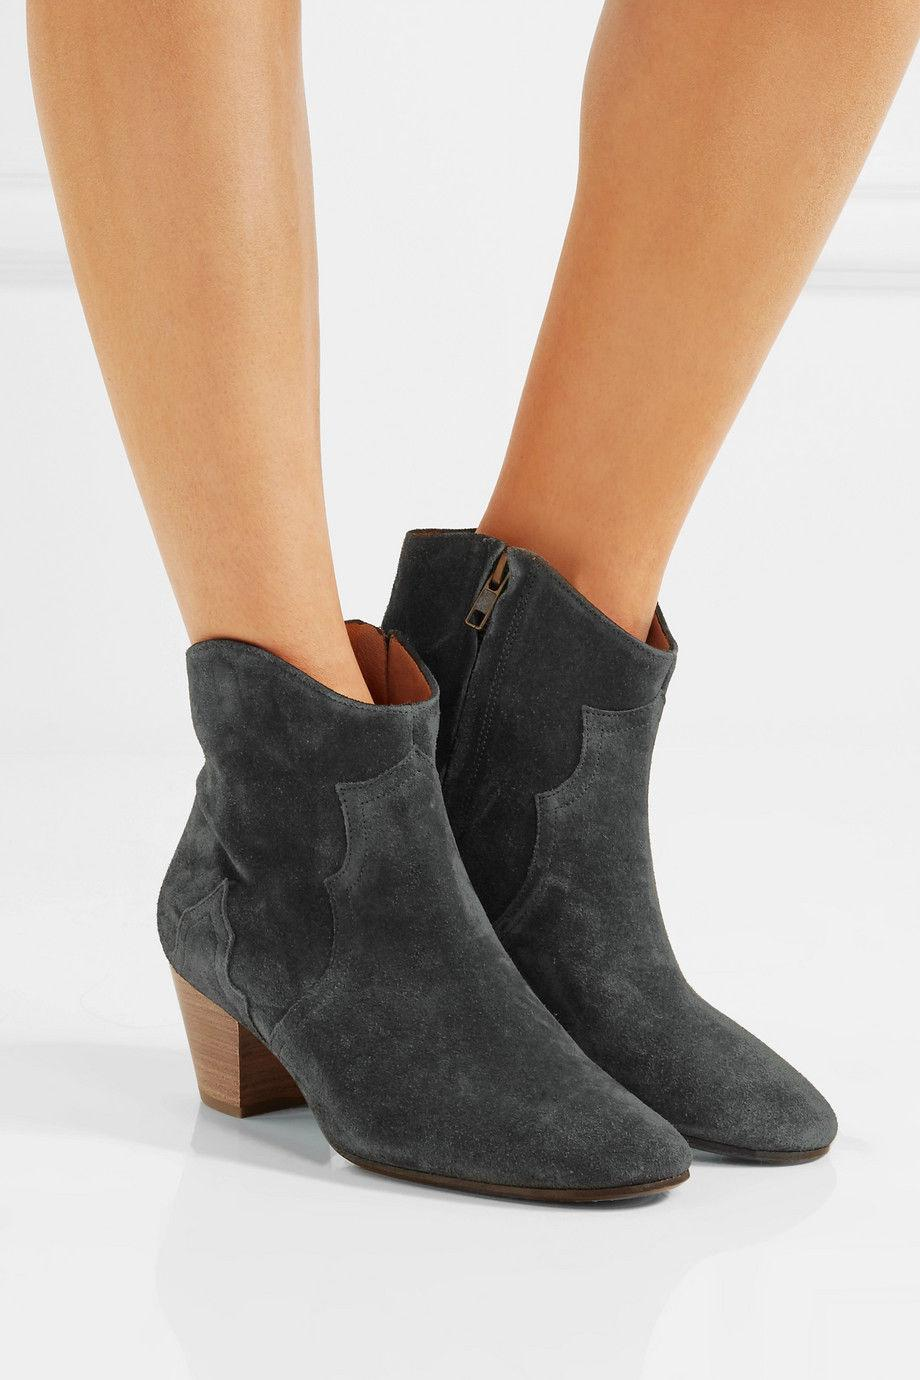 ISABEL MARANT Faded Black Suede Shorty Dicker Ankle Booties 39